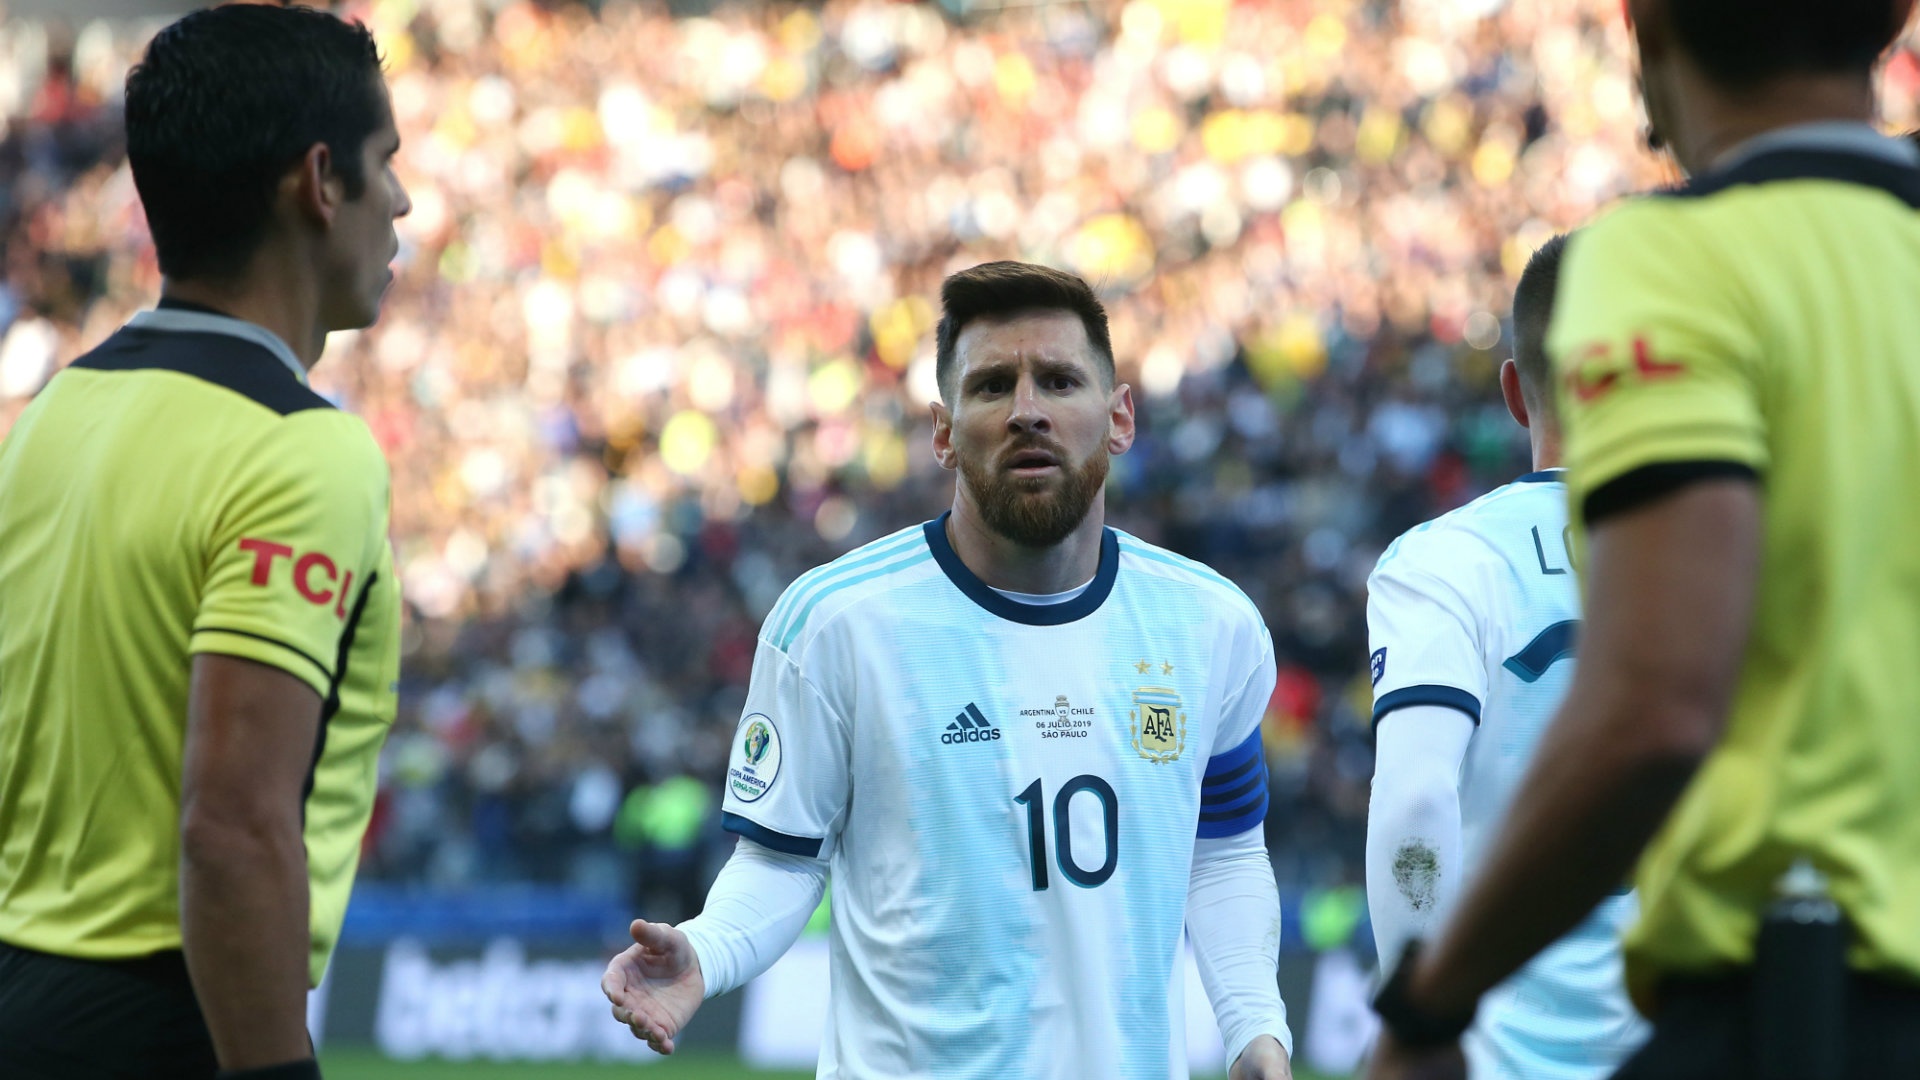 Messi needs to have more respect, says Brazil boss Tite